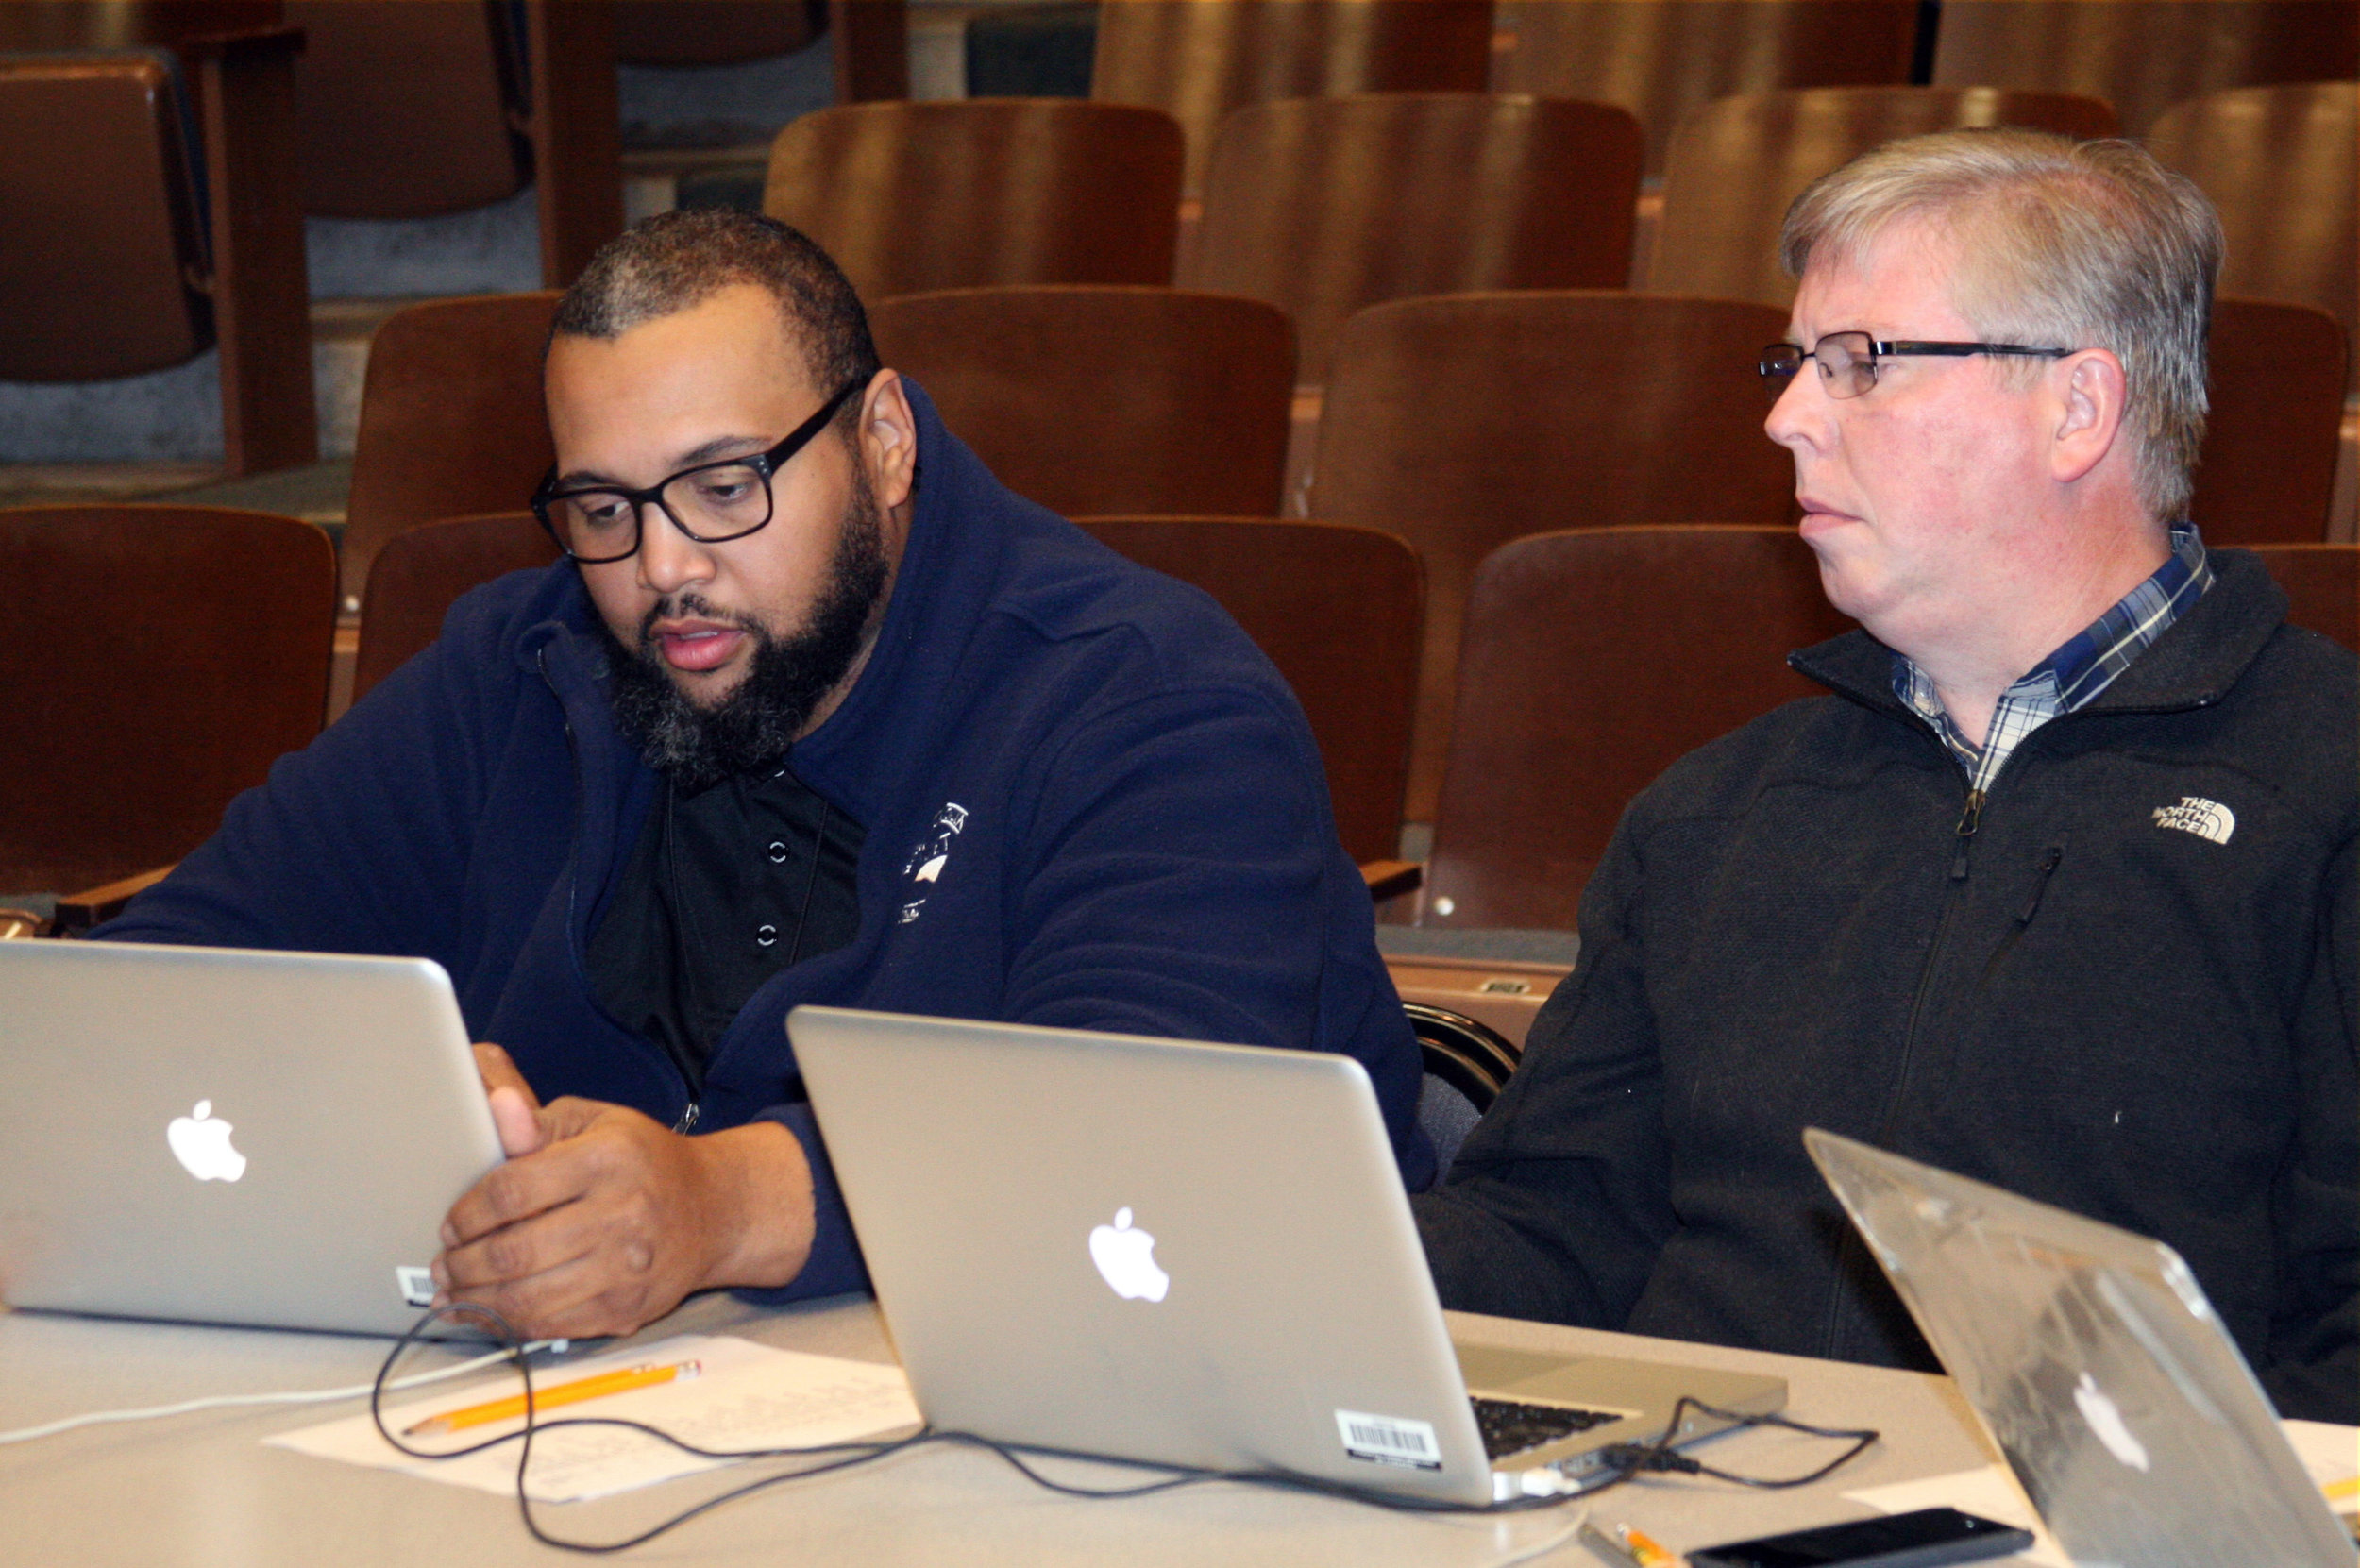 Greg Burriss, right, consults with Joey Walden while judging auditions during Sing and Play '18 in February. Burriss has been named director of Sing and Play '19, the second-annual musical competition scheduled for February at Jordan-Matthews High School.